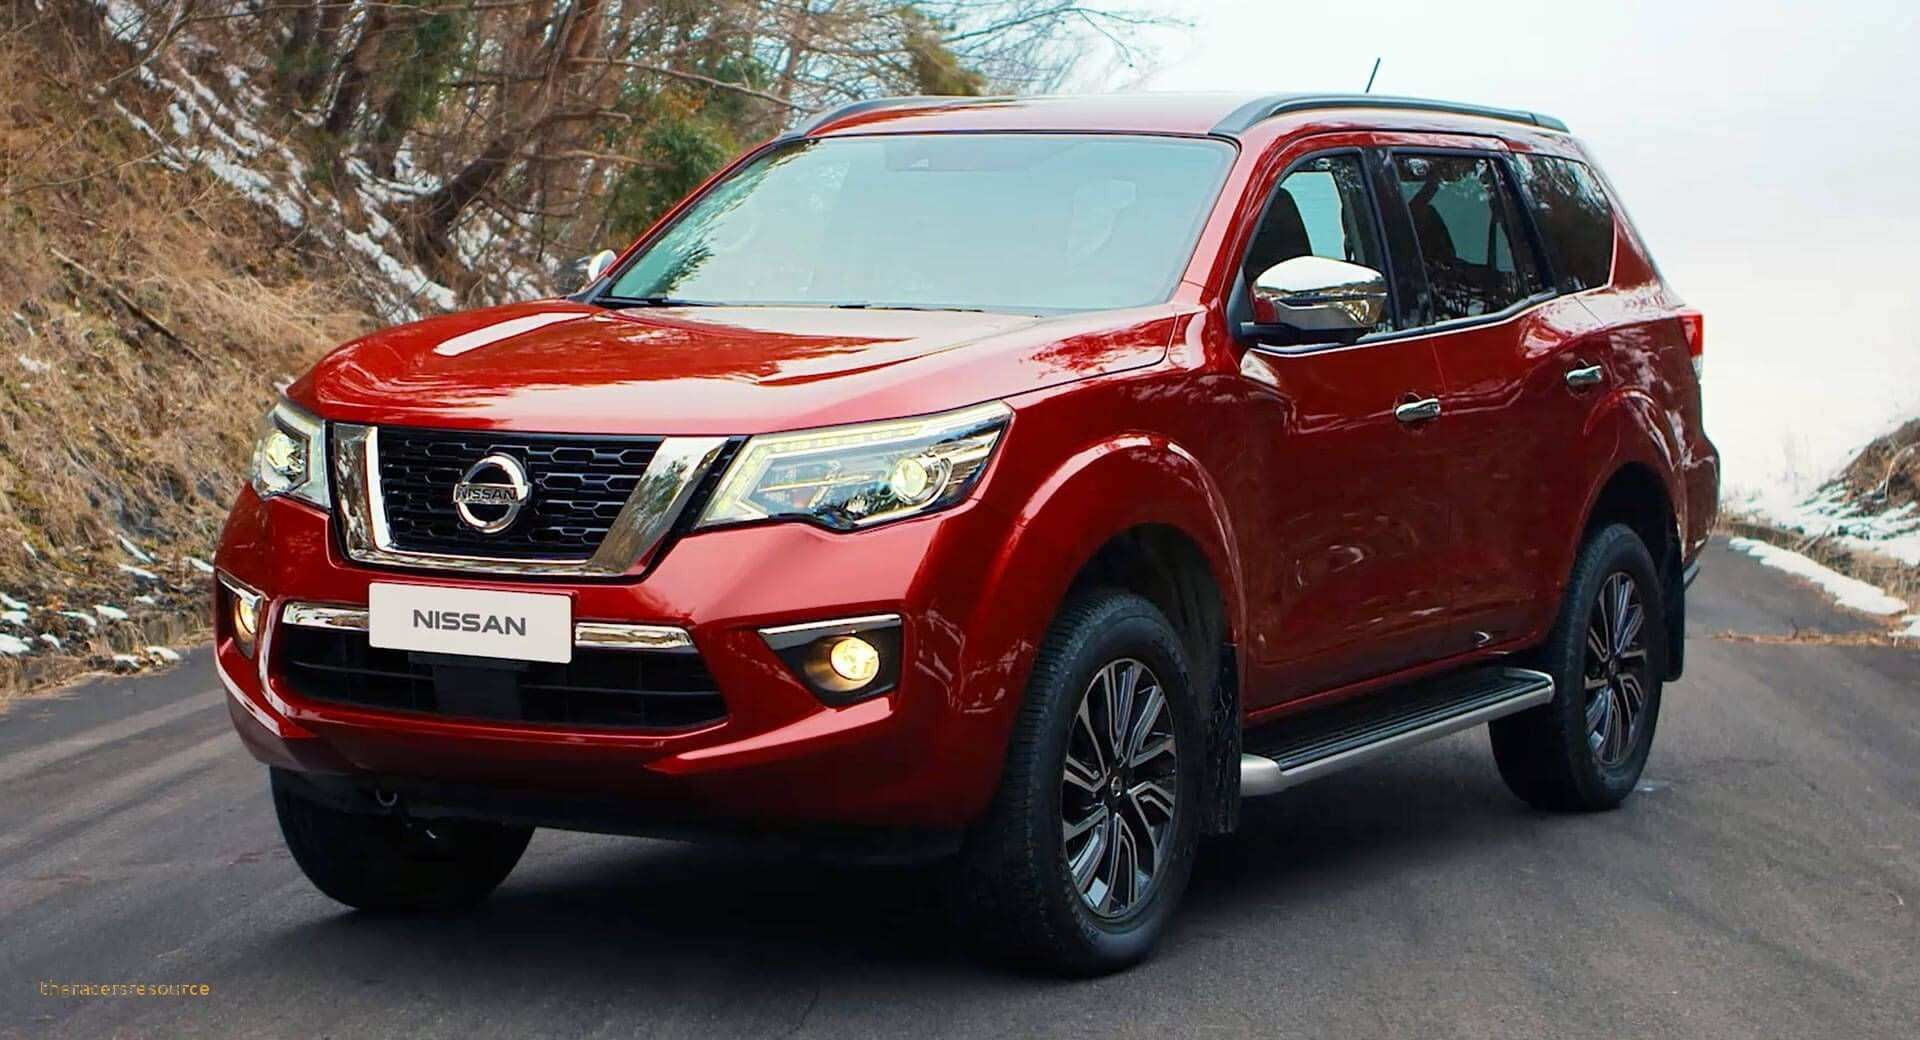 70 All New Nissan Patrol 2020 New Concept New Concept by Nissan Patrol 2020 New Concept